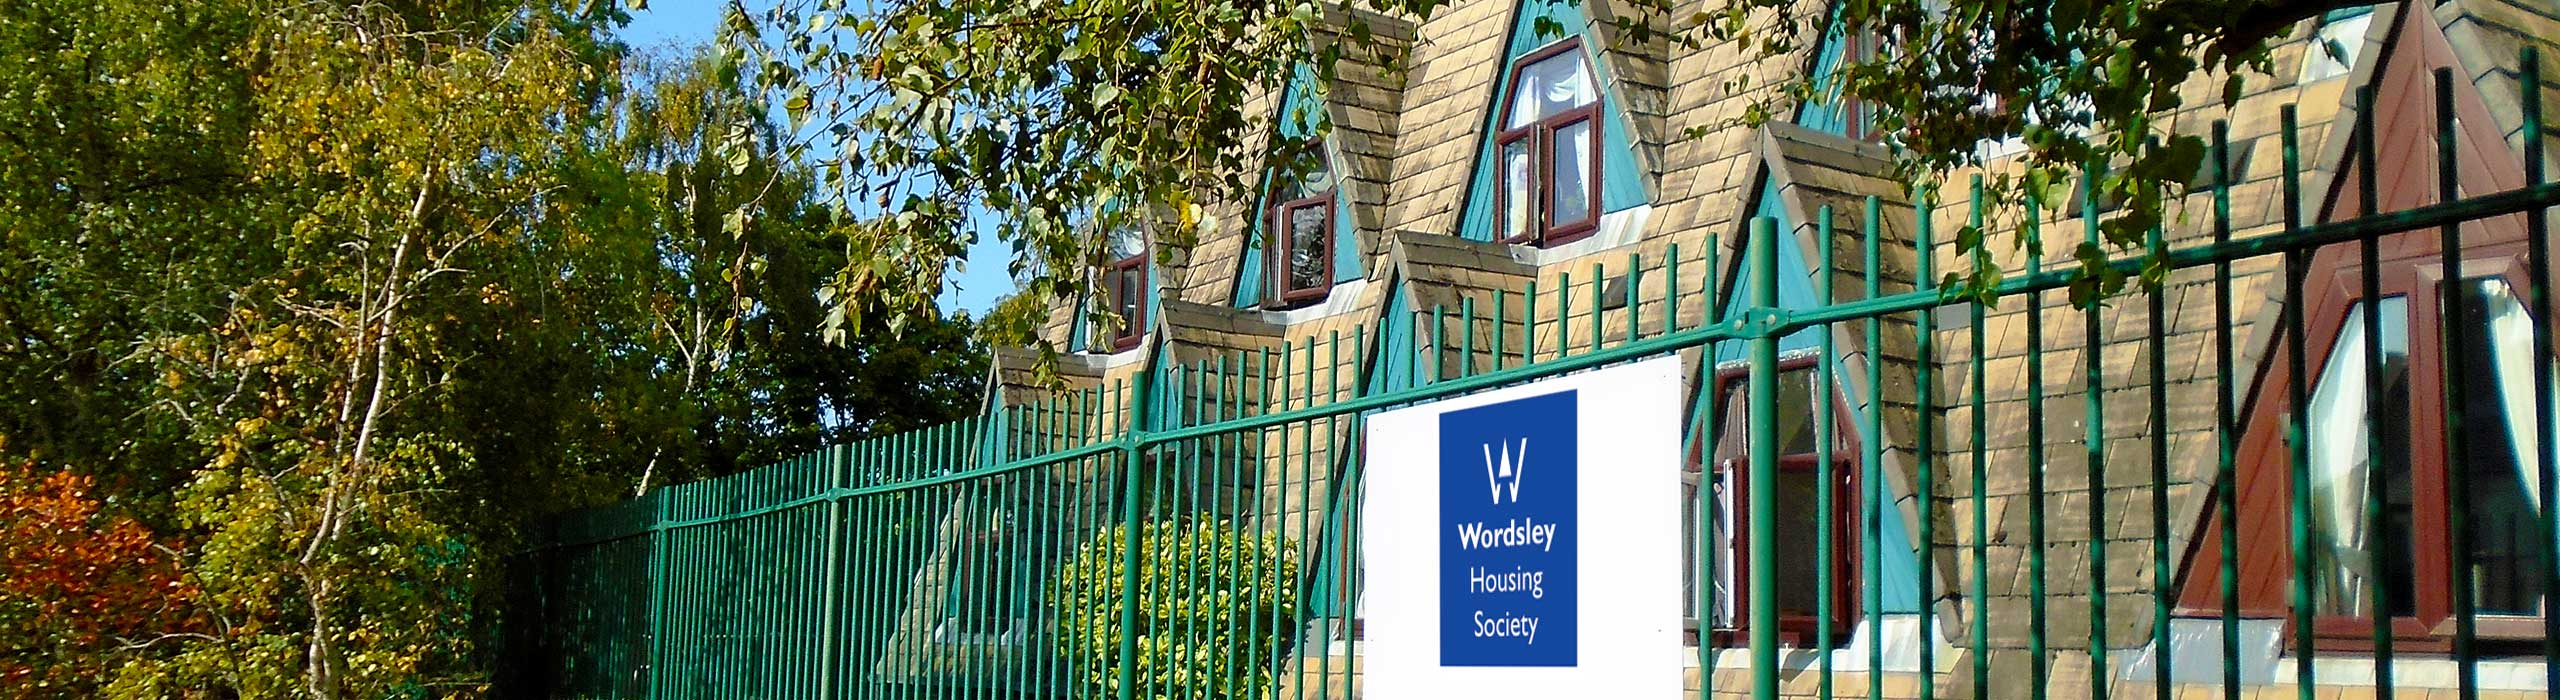 Wordsely Housing Society